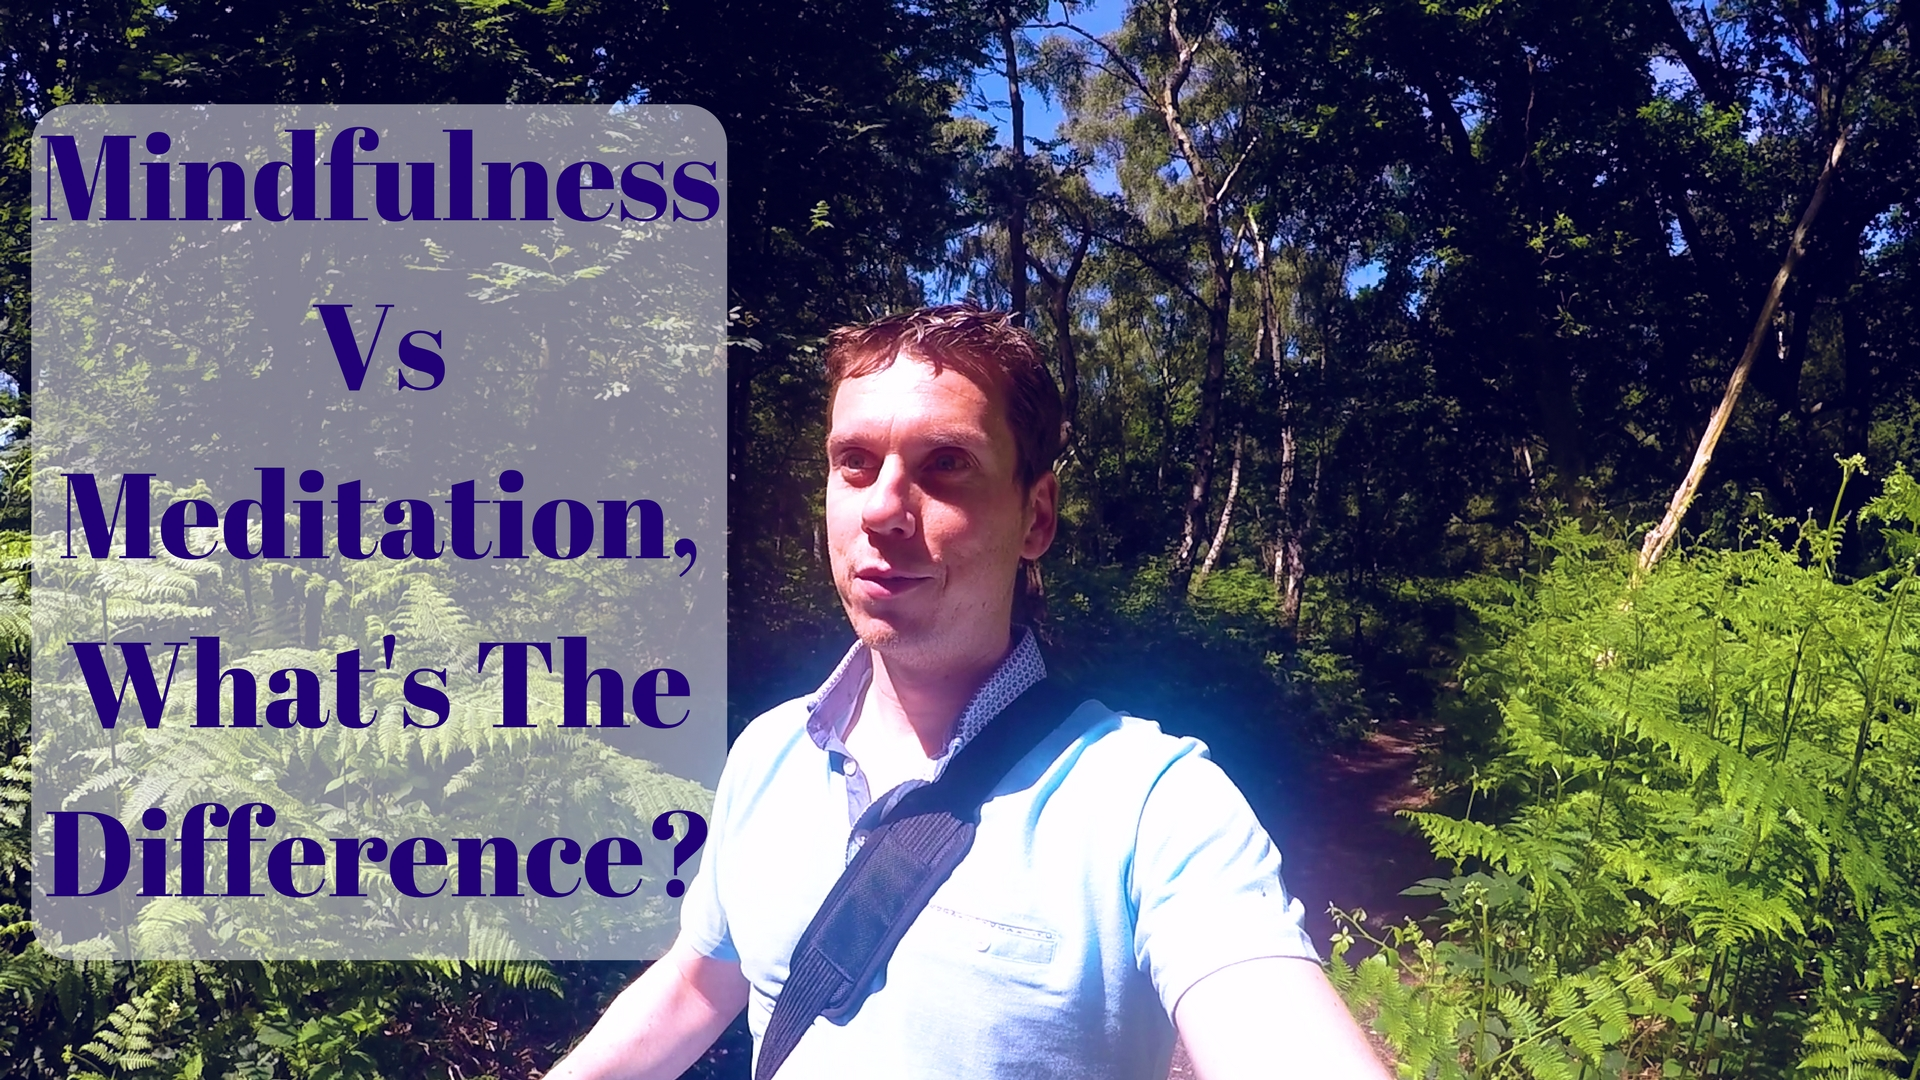 Mindfulness Vs Meditation, What's The Difference- Thumbnail